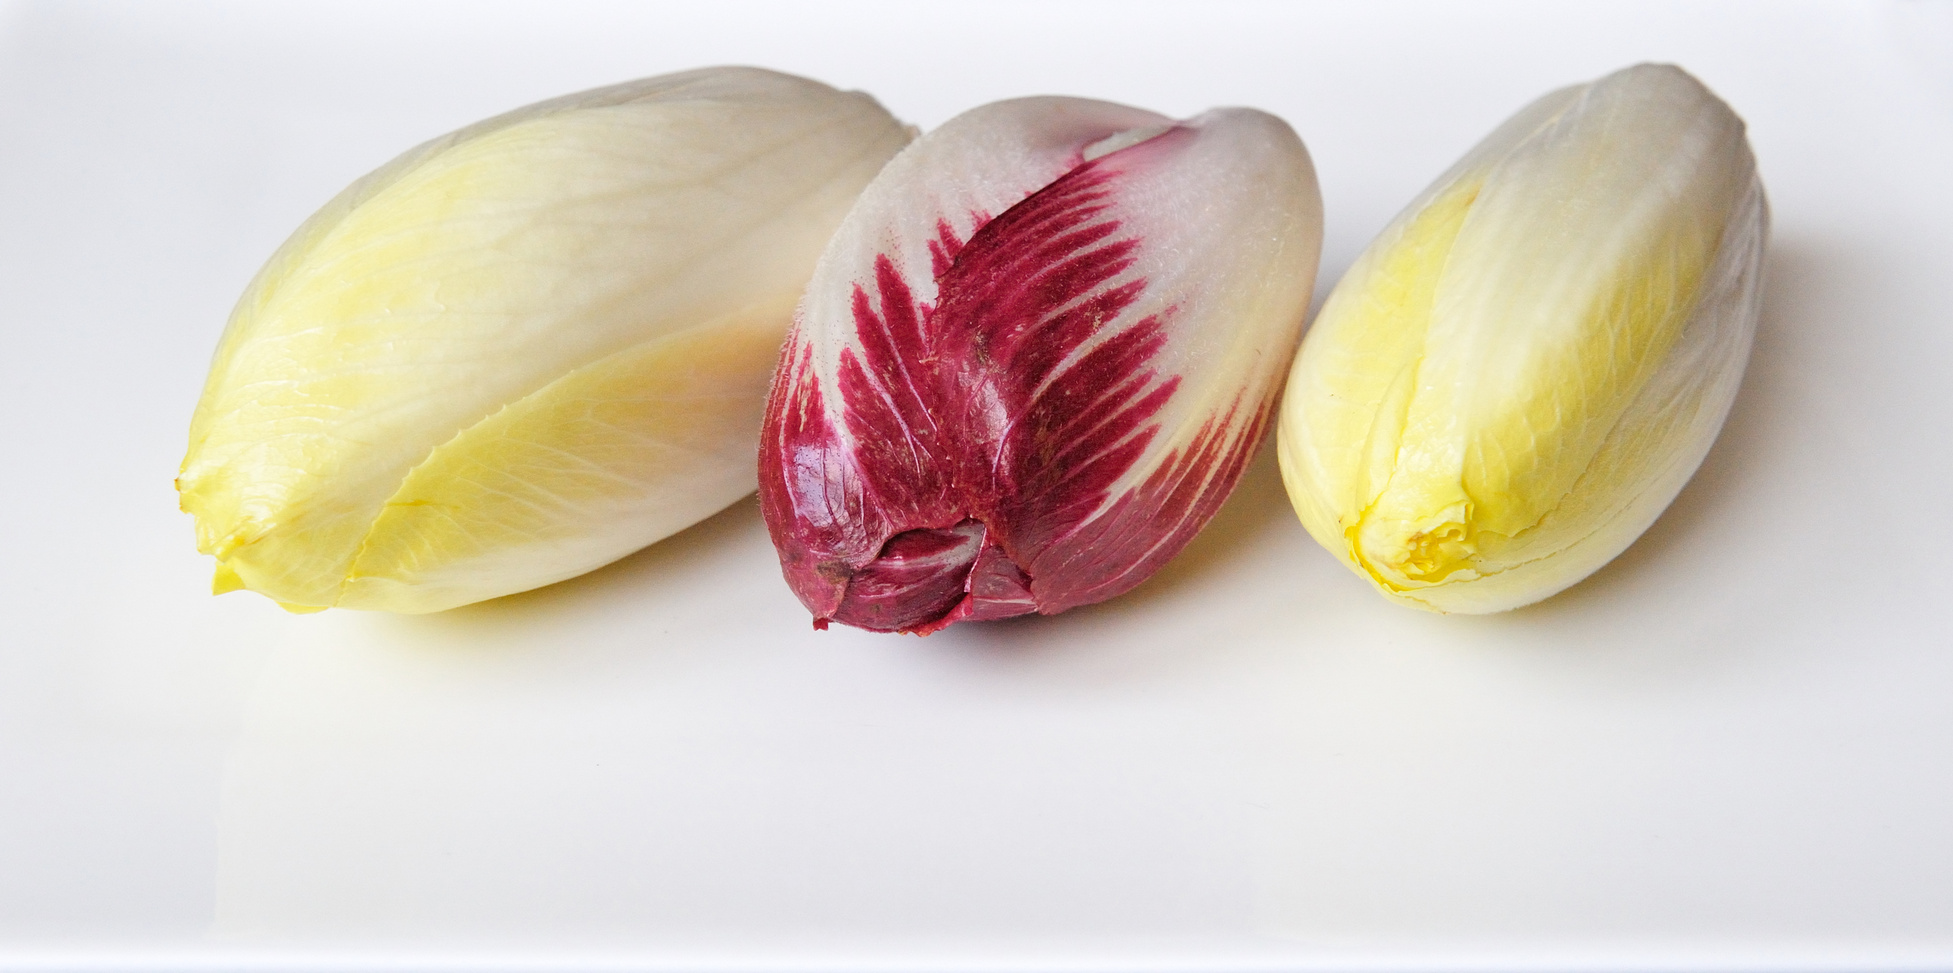 Endives, photo Yves Roland - Fotolia.com